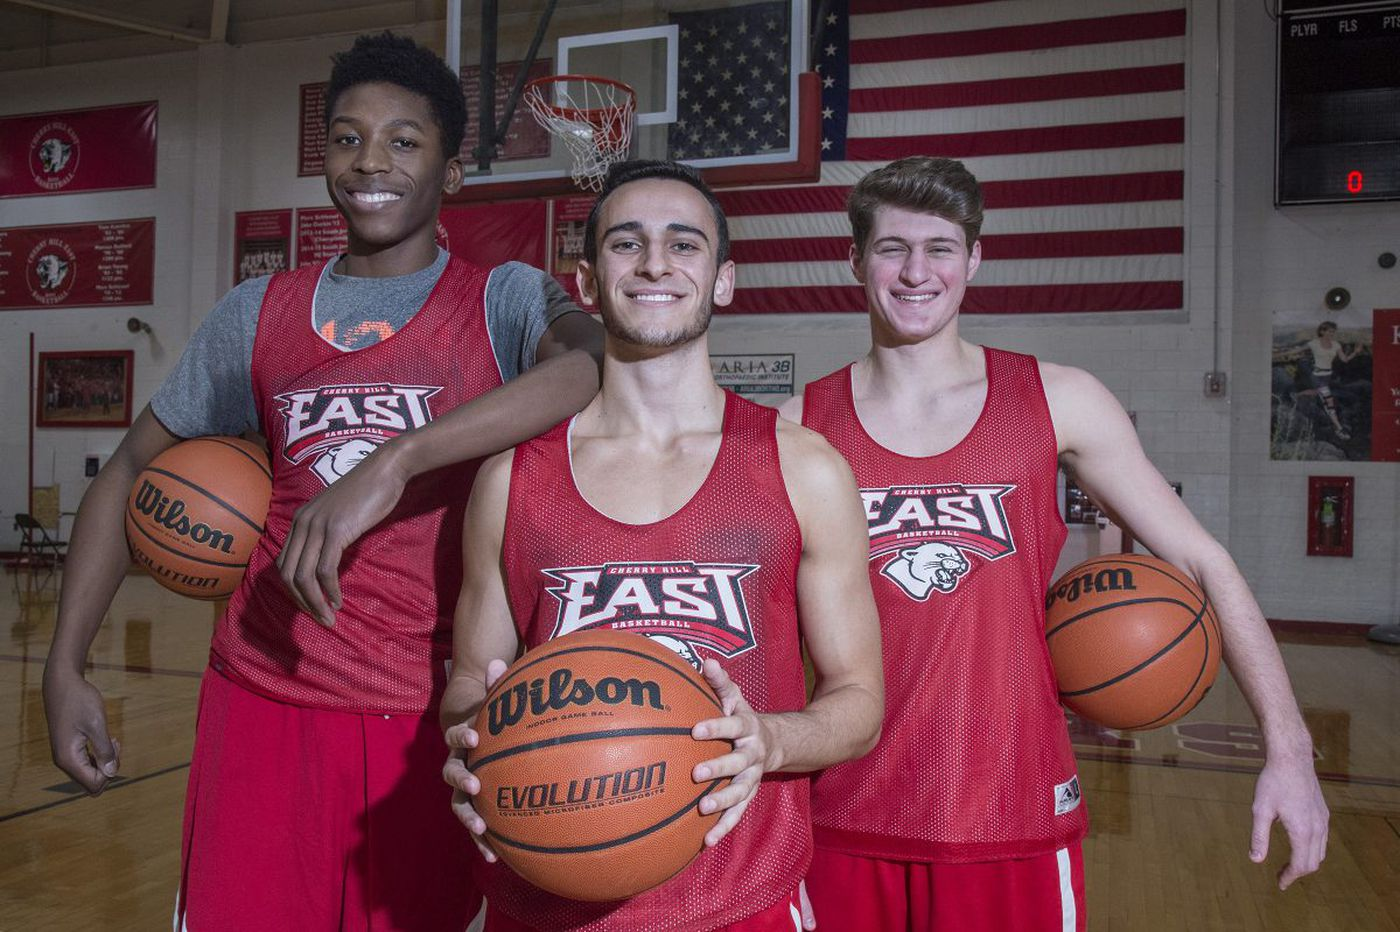 Cherry Hill East boys' basketball seniors fueled by past rejections | Phil Anastasia